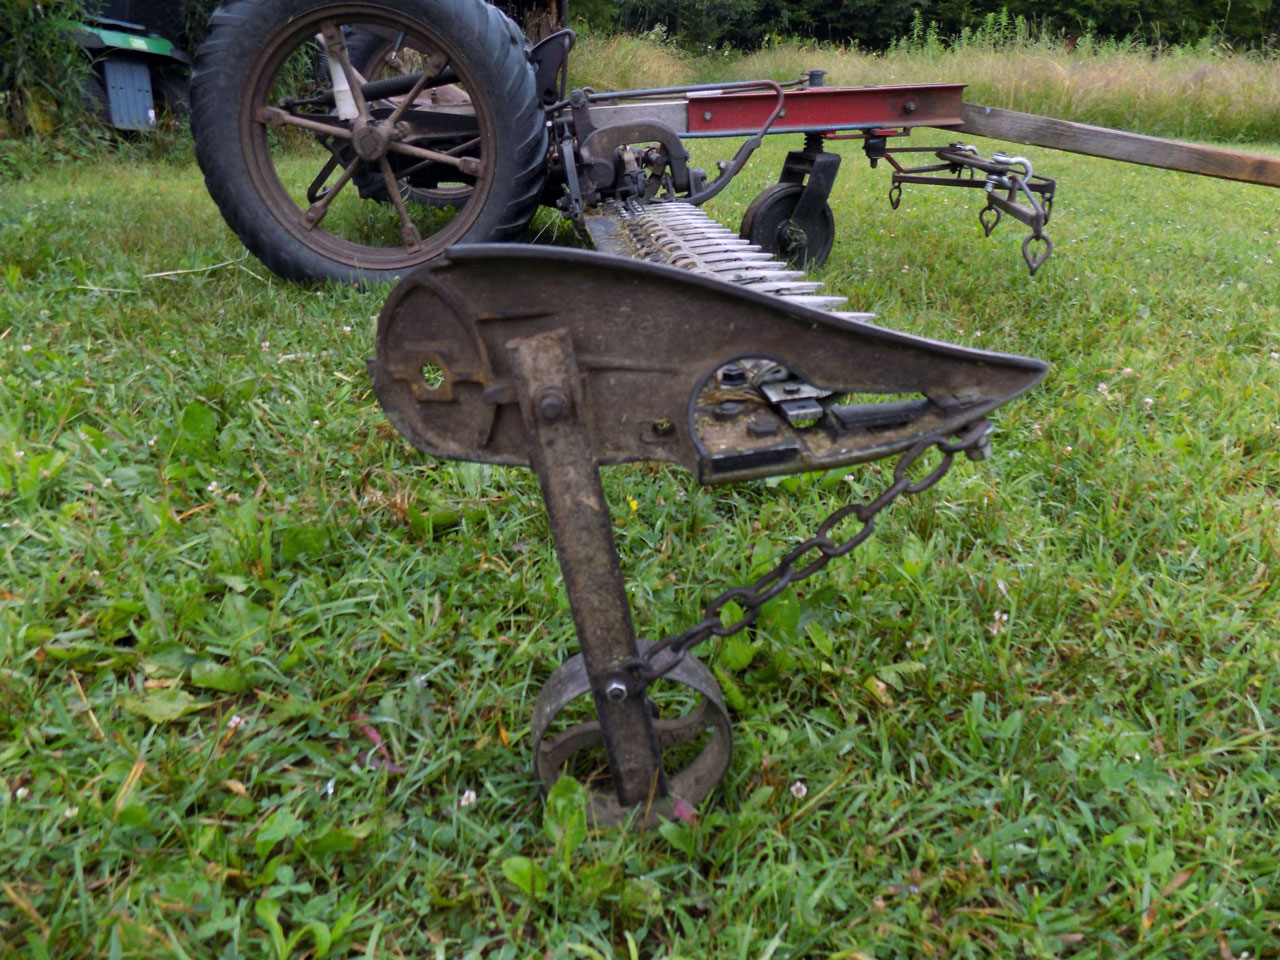 Mower Modifications for Cover Crop Cocktails